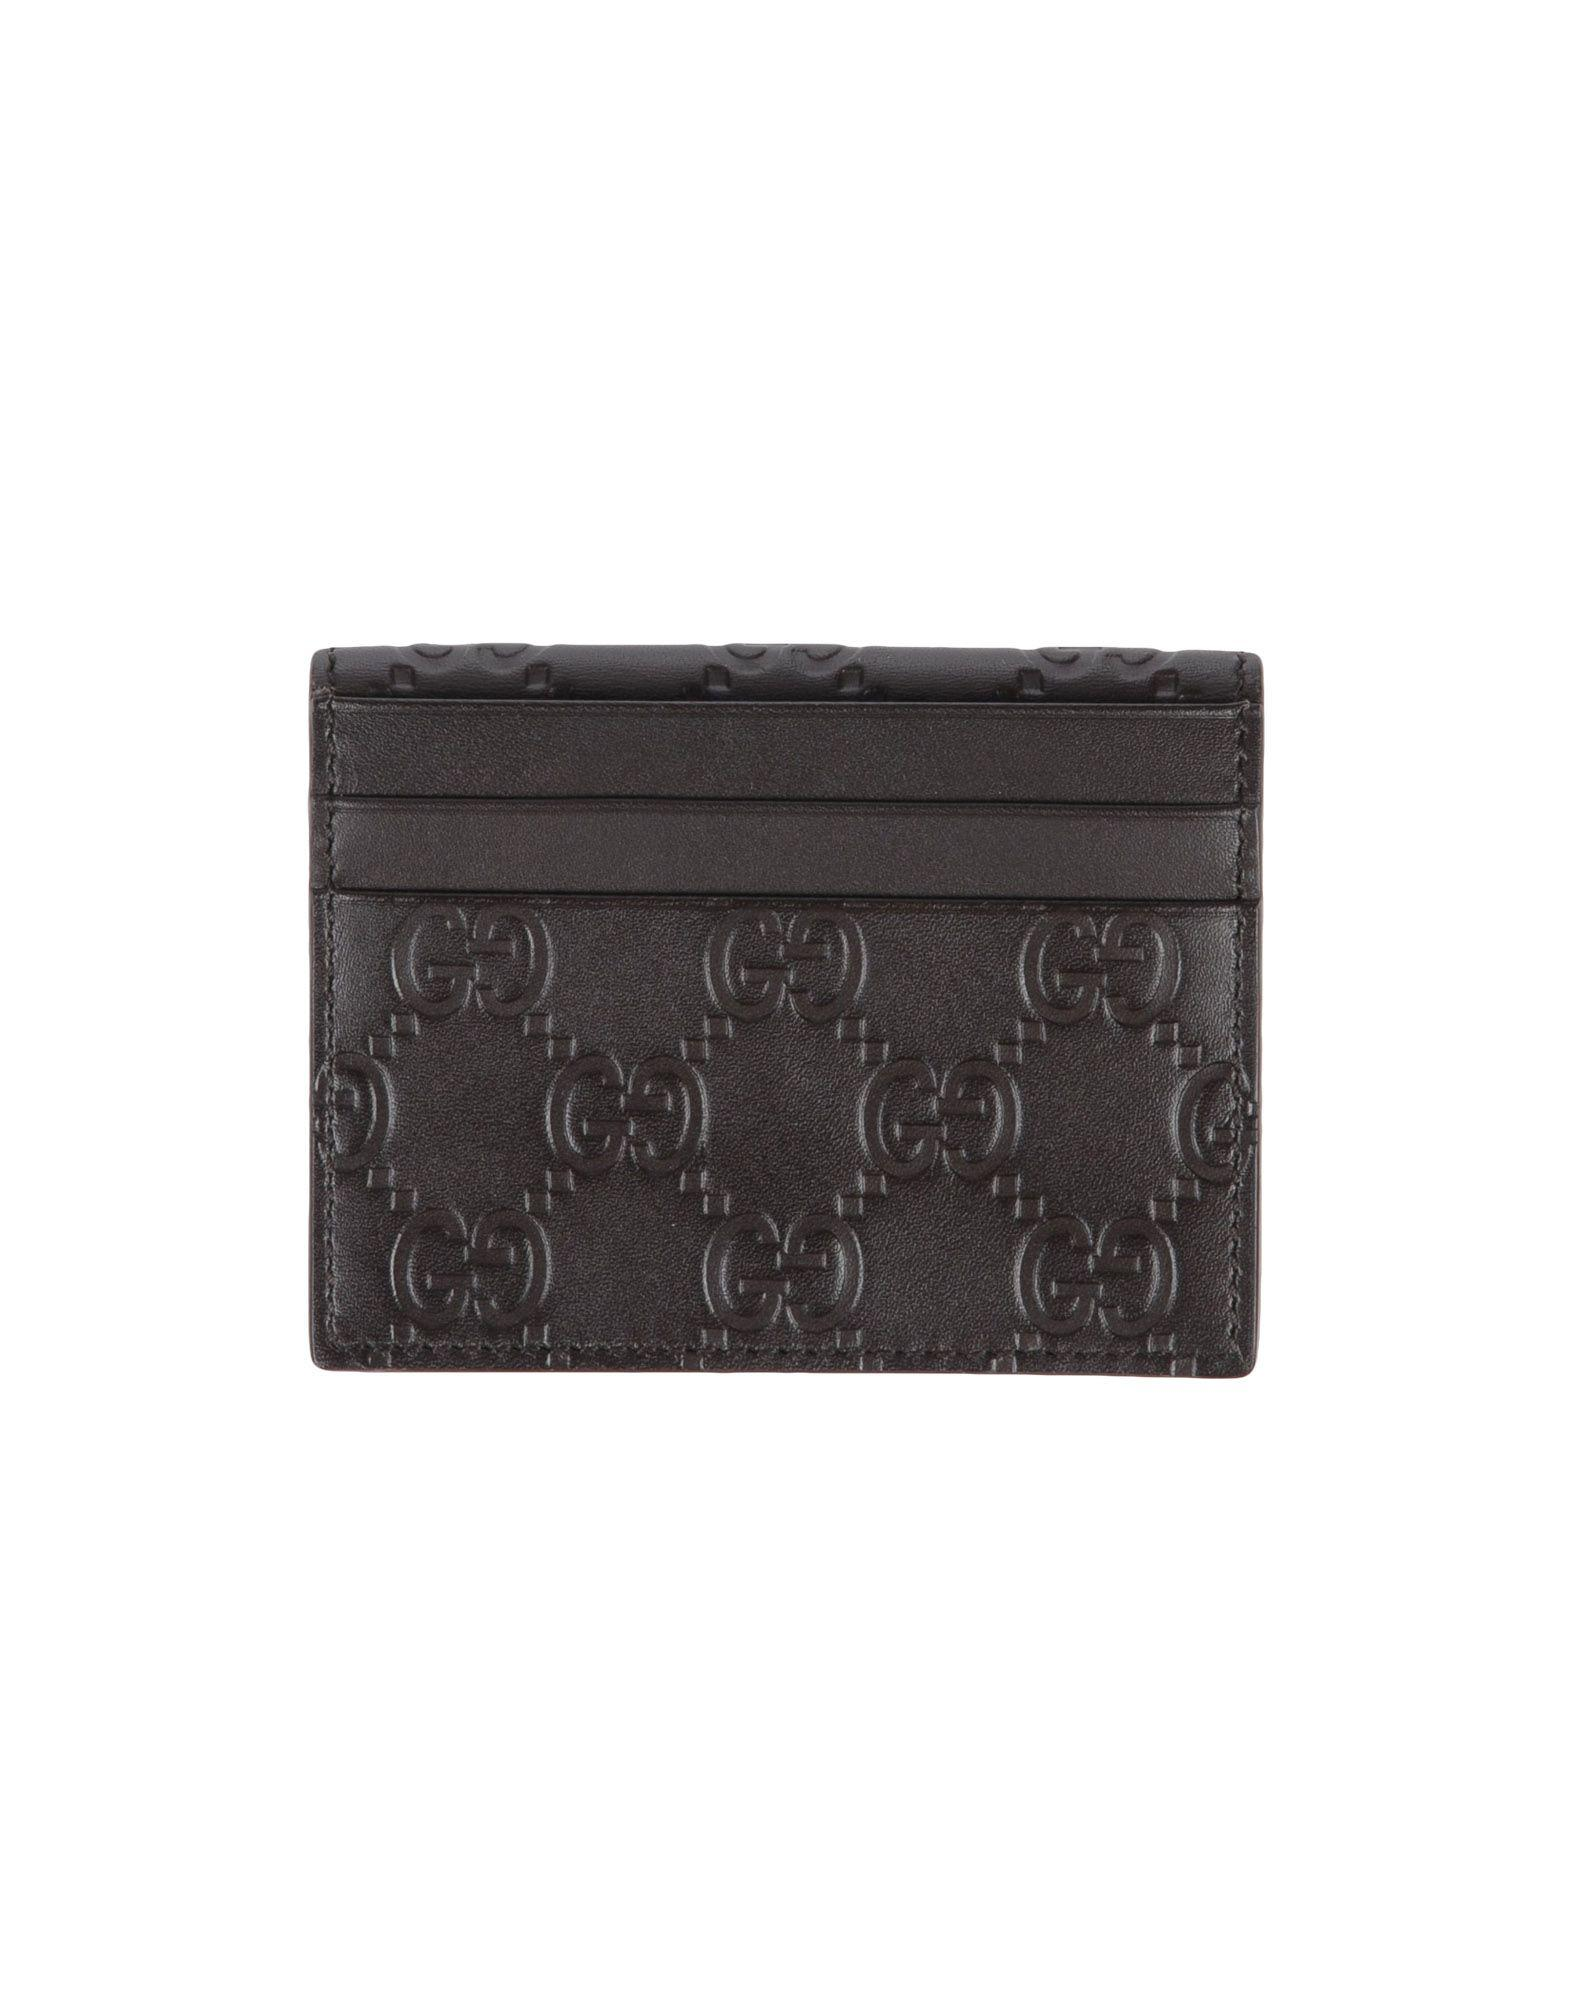 Gucci Document Holders In Dark Brown